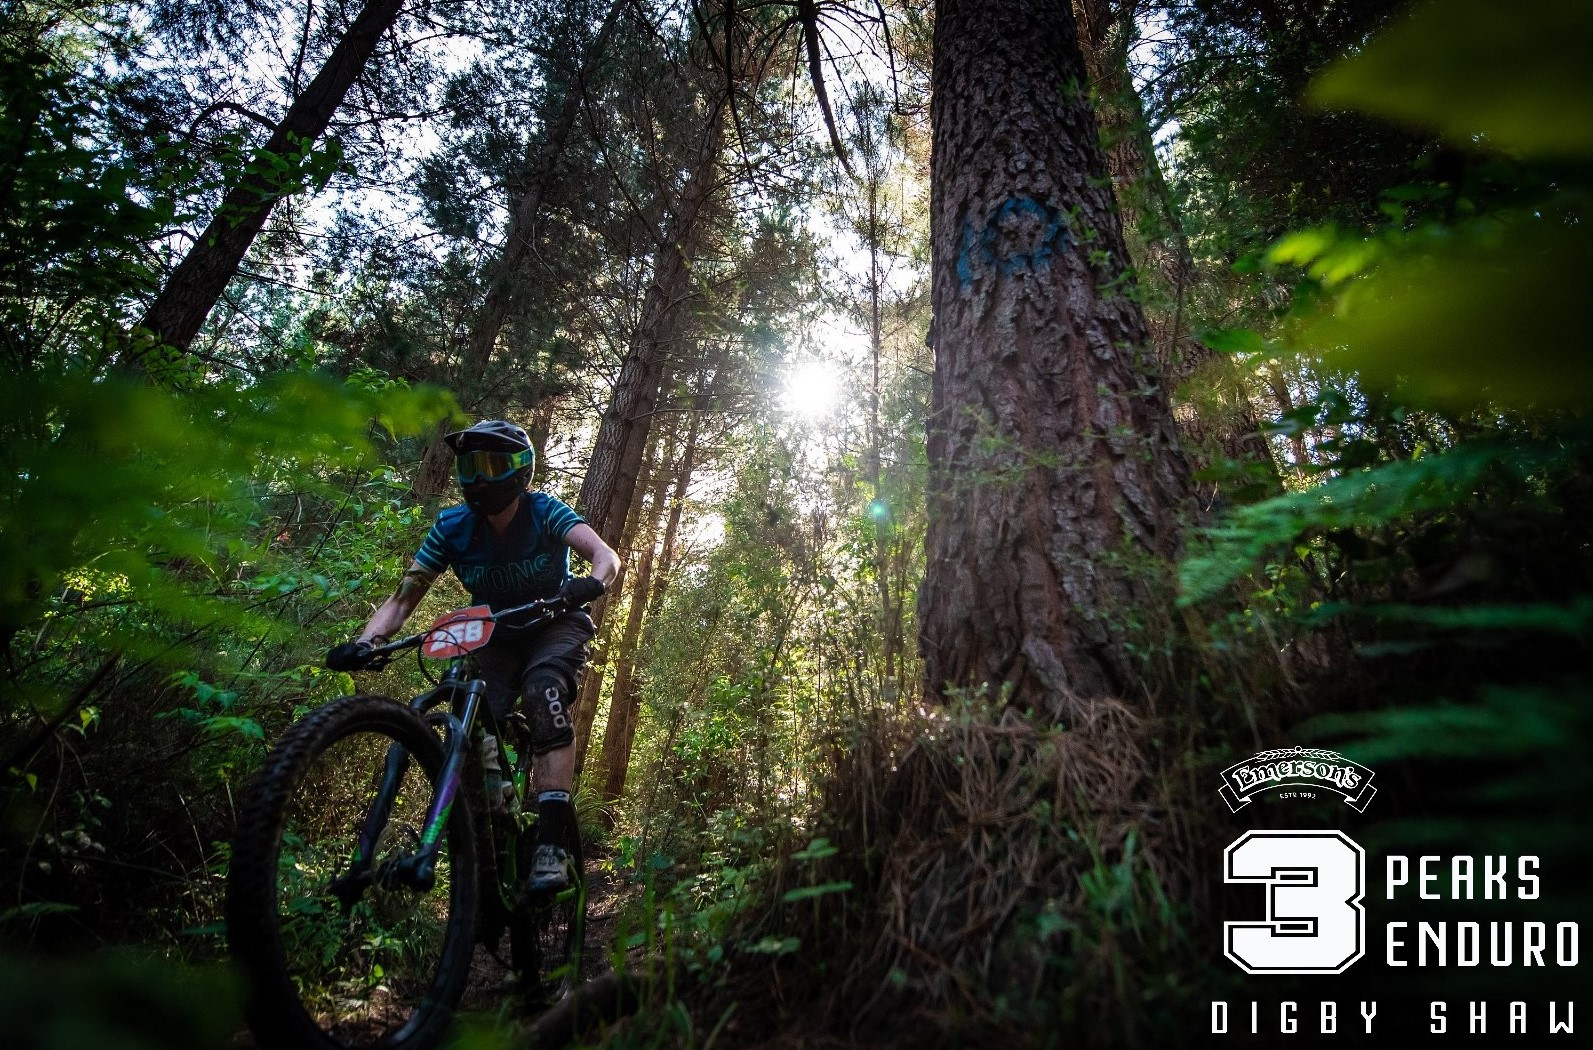 Jenna Makgill putting the pedal to the metal in the trees. Photo by Digby Shaw.